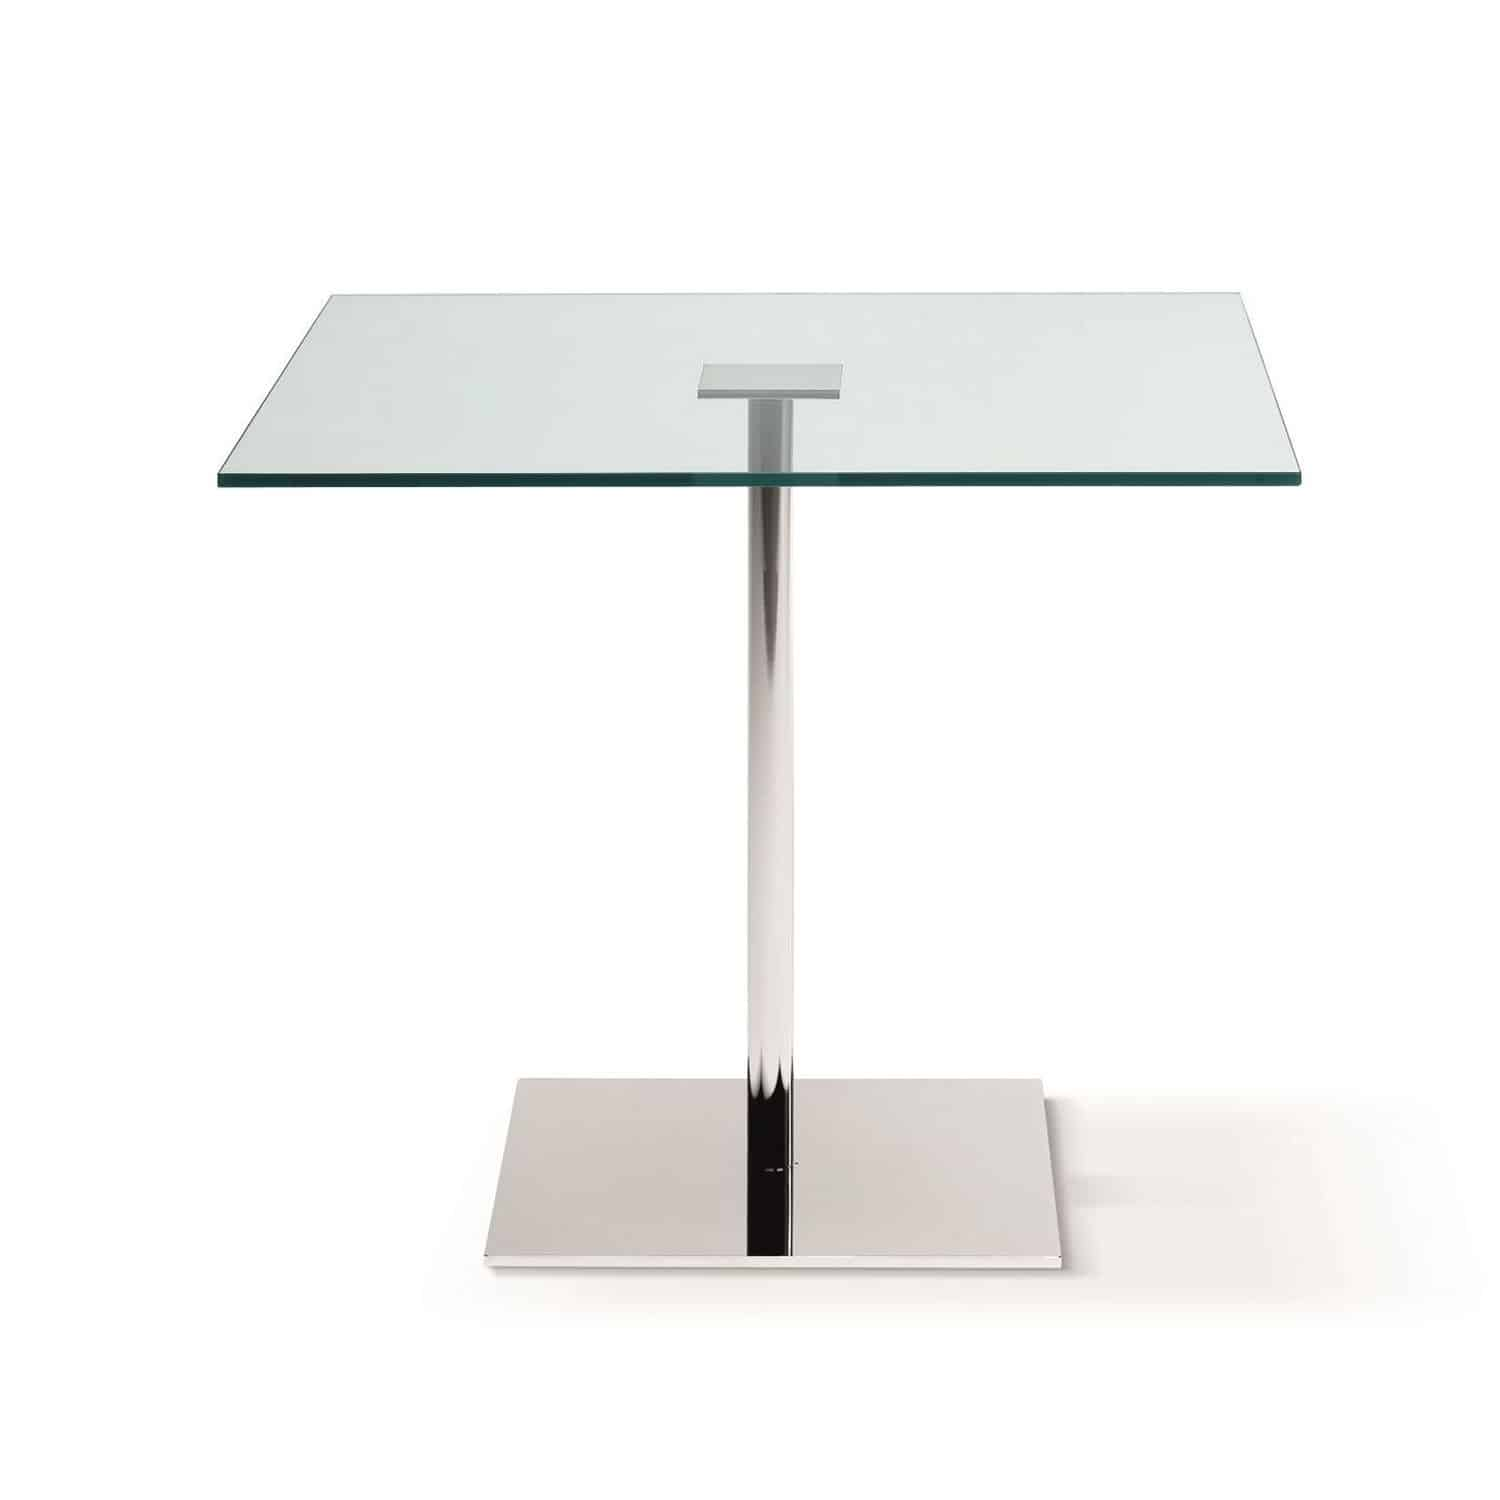 klarity  glass furniture shop  glass dining tables  metal and glassdining tables  farniente square glass and metal dining table by tonelli. farniente square glass and metal dining table by tonelli  klarity